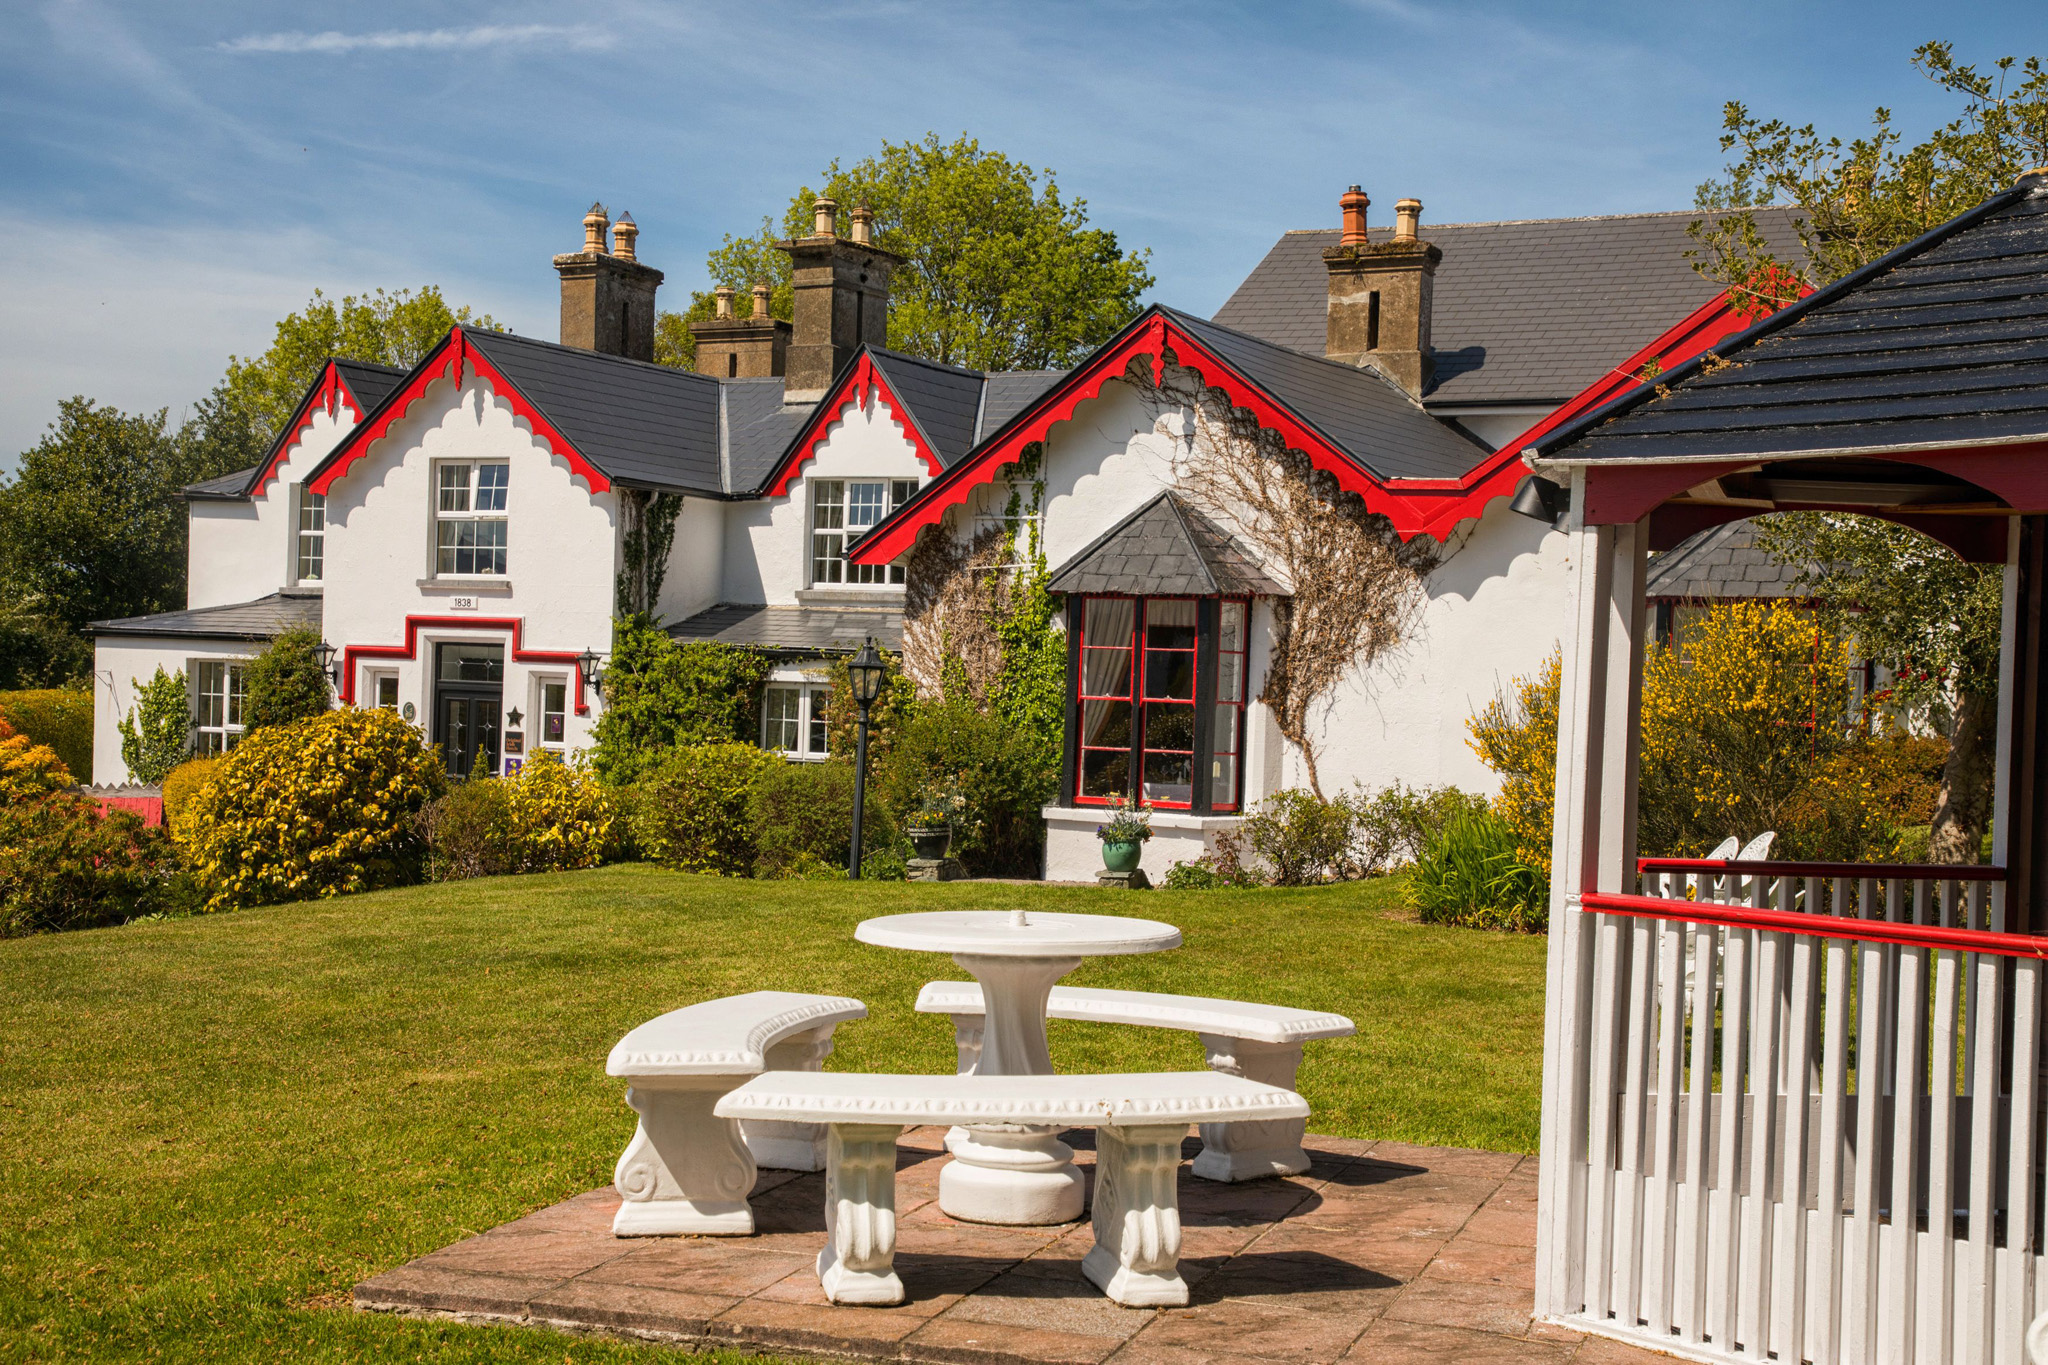 Killeen House Hotel | Aghadoe , Lakes of Killarney, Co Kerry | Photos 1